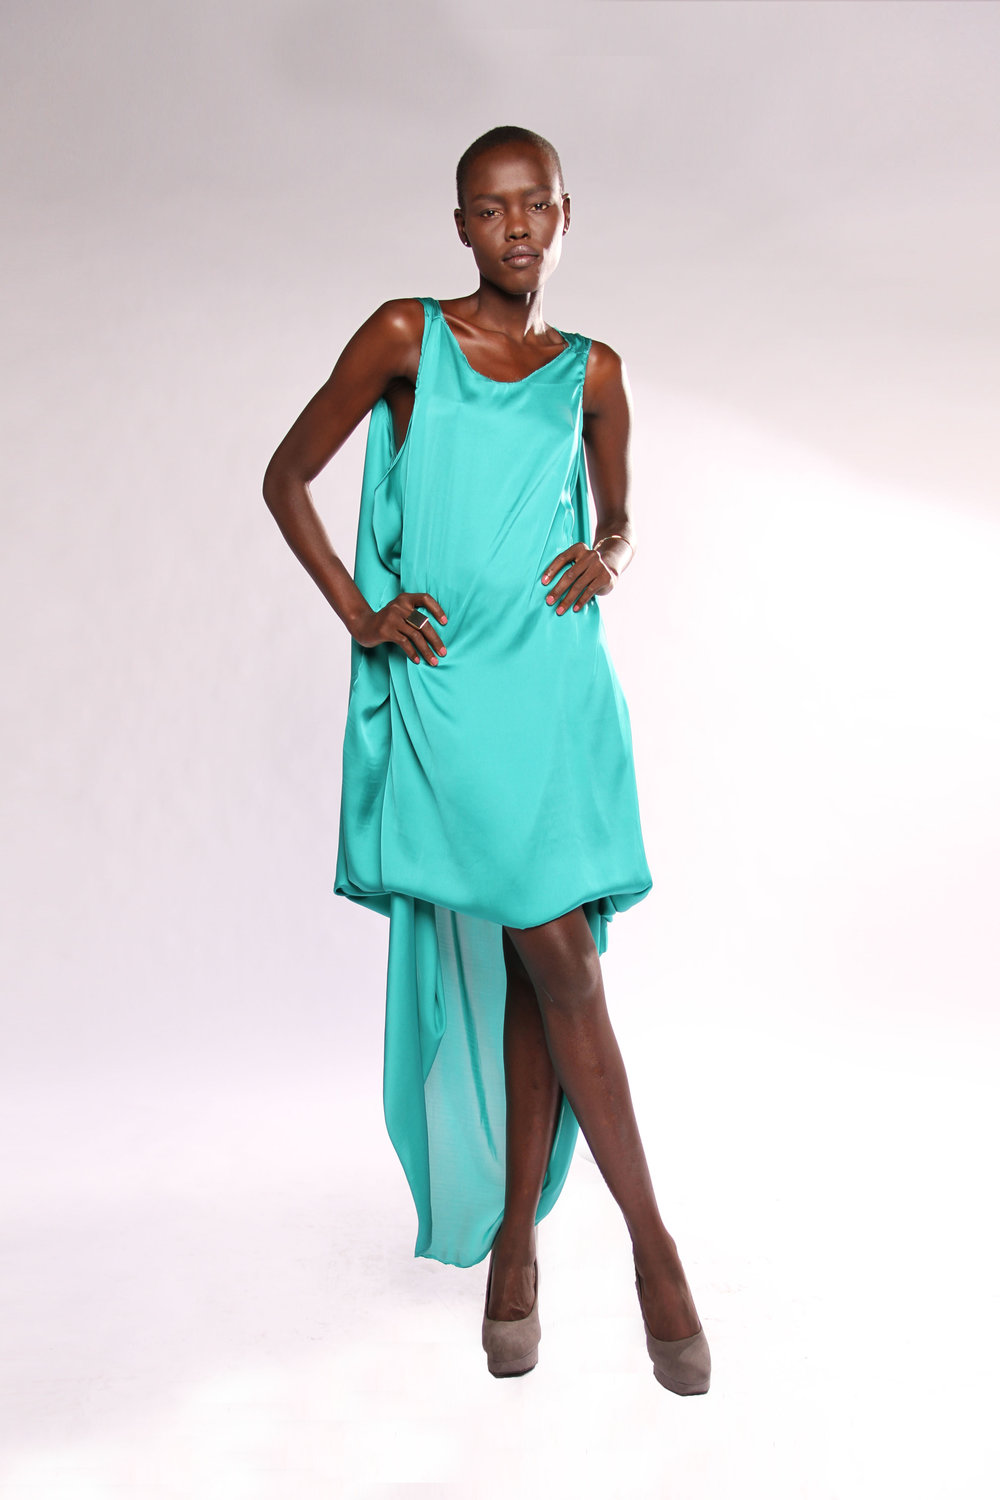 dominique-pearl-collection20_1.JPG